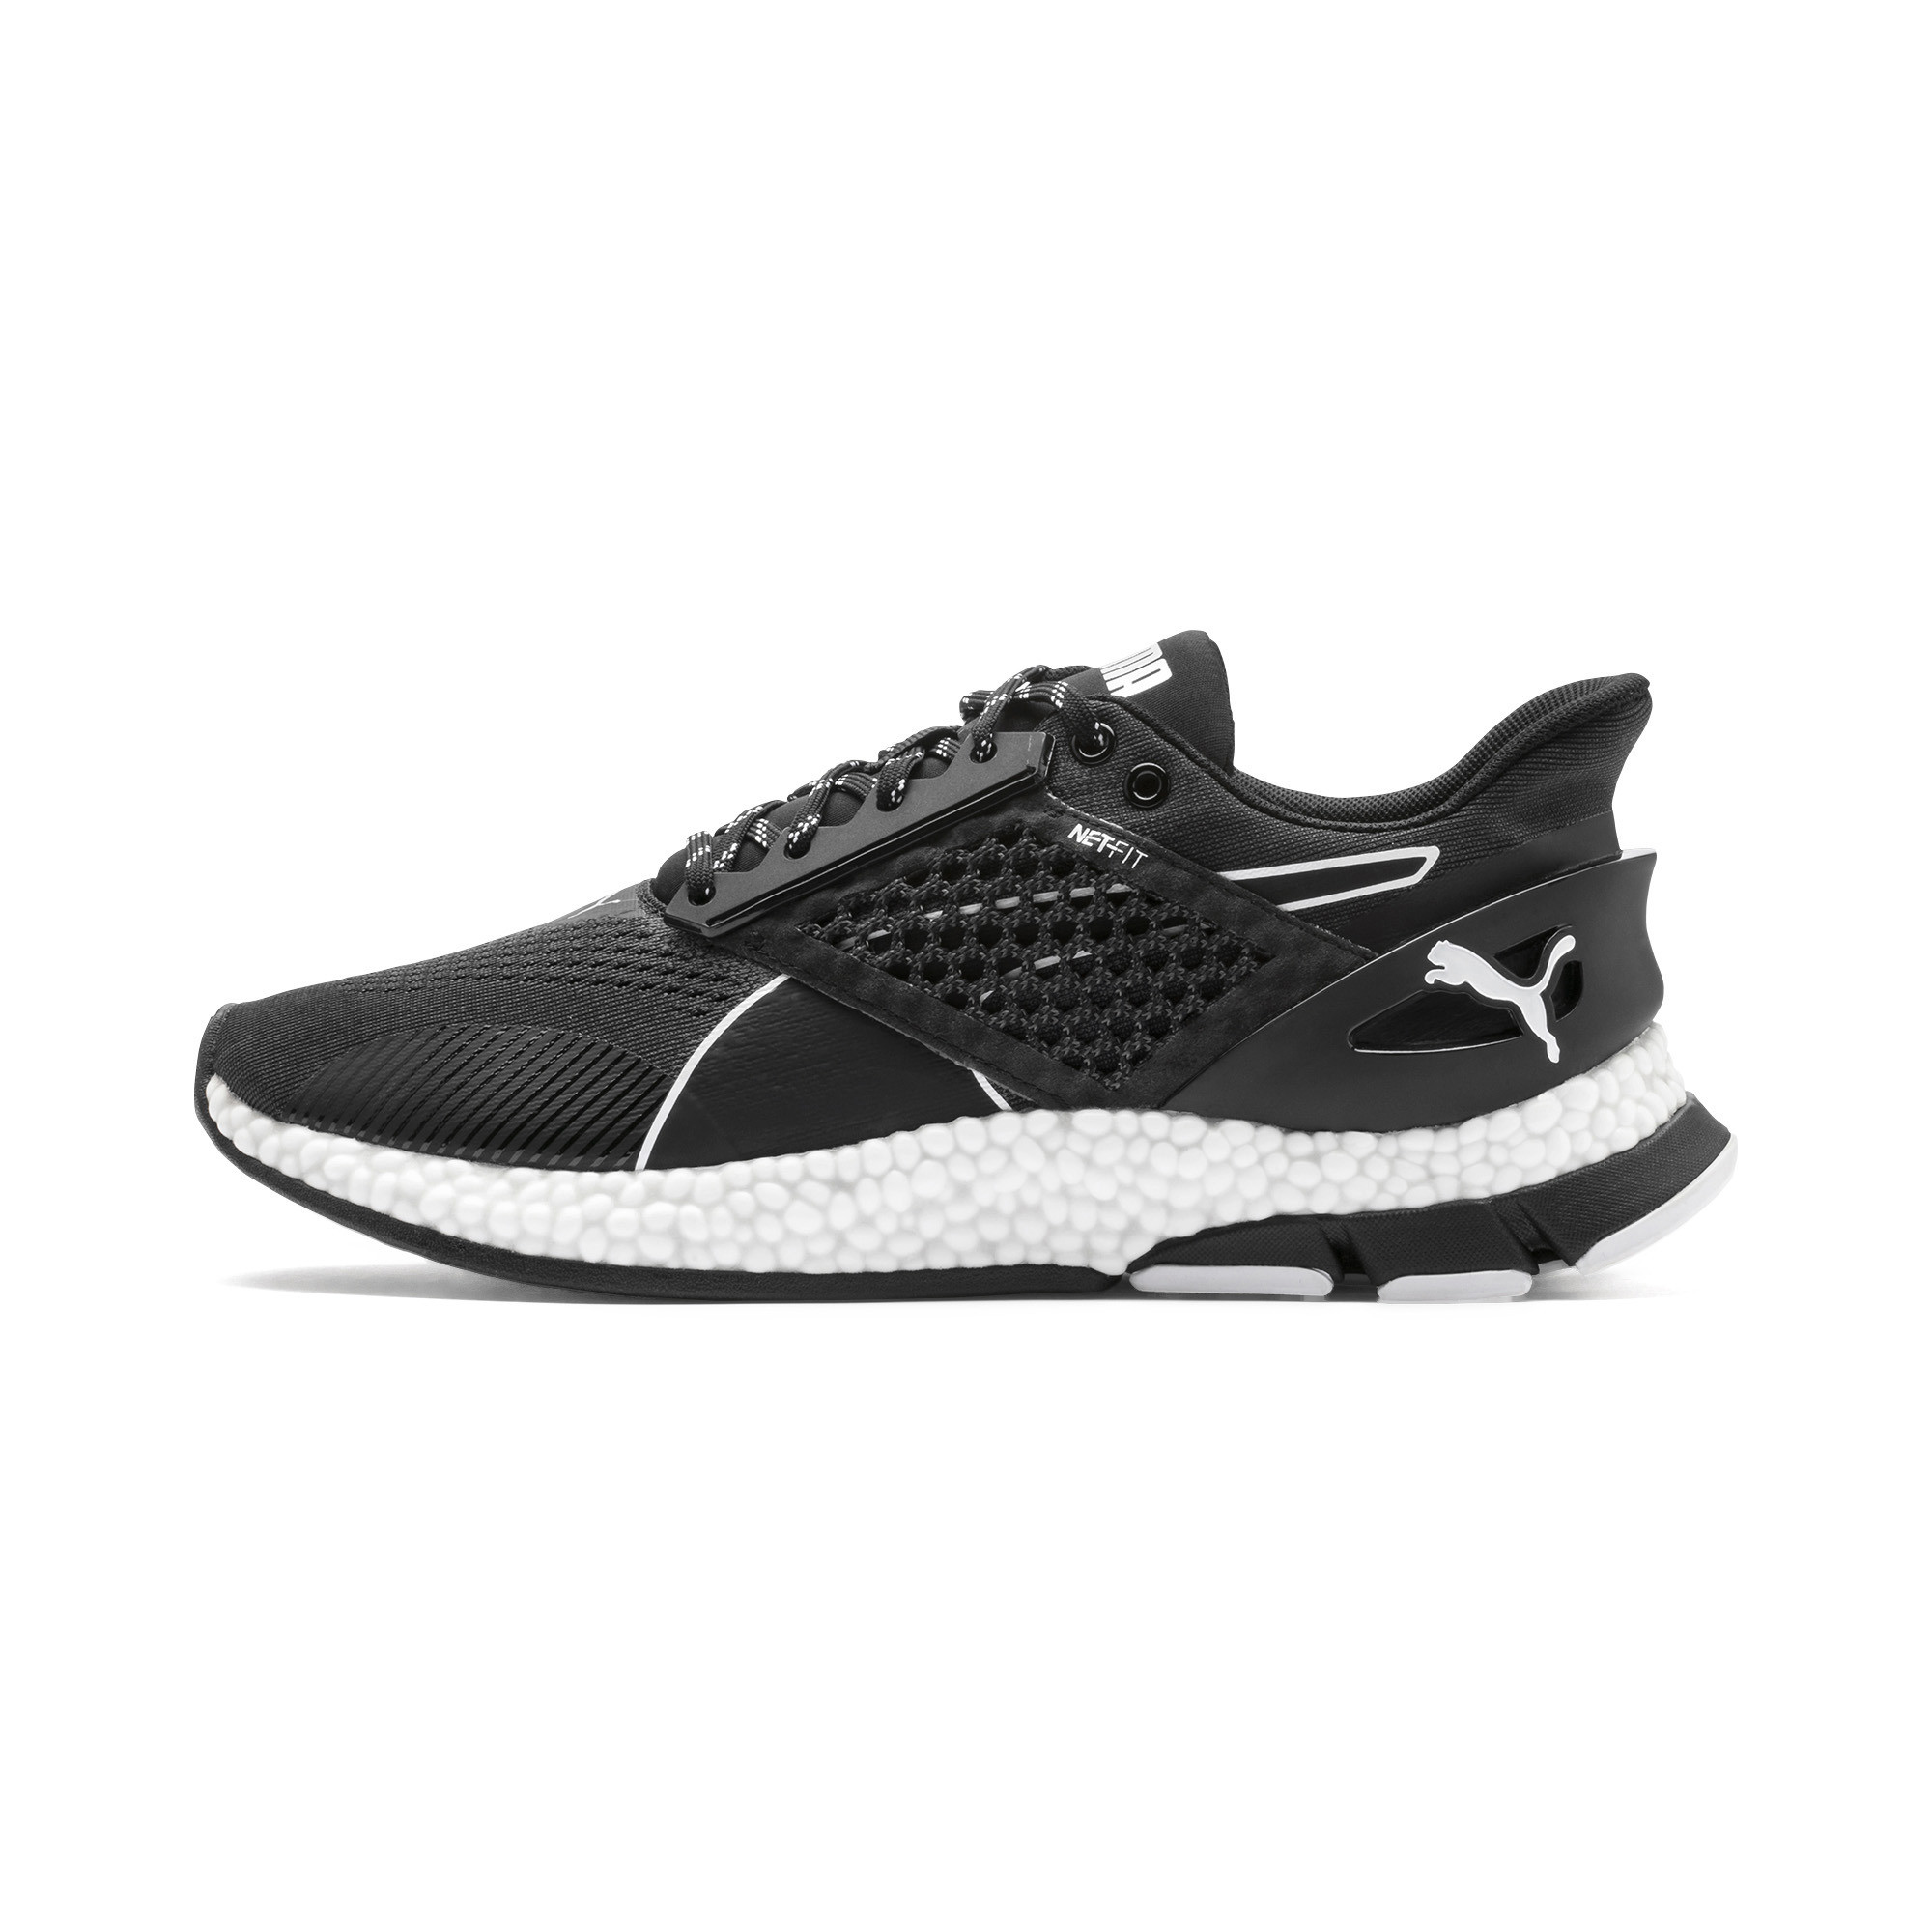 PUMA-Men-039-s-HYBRID-Astro-Running-Shoes thumbnail 12